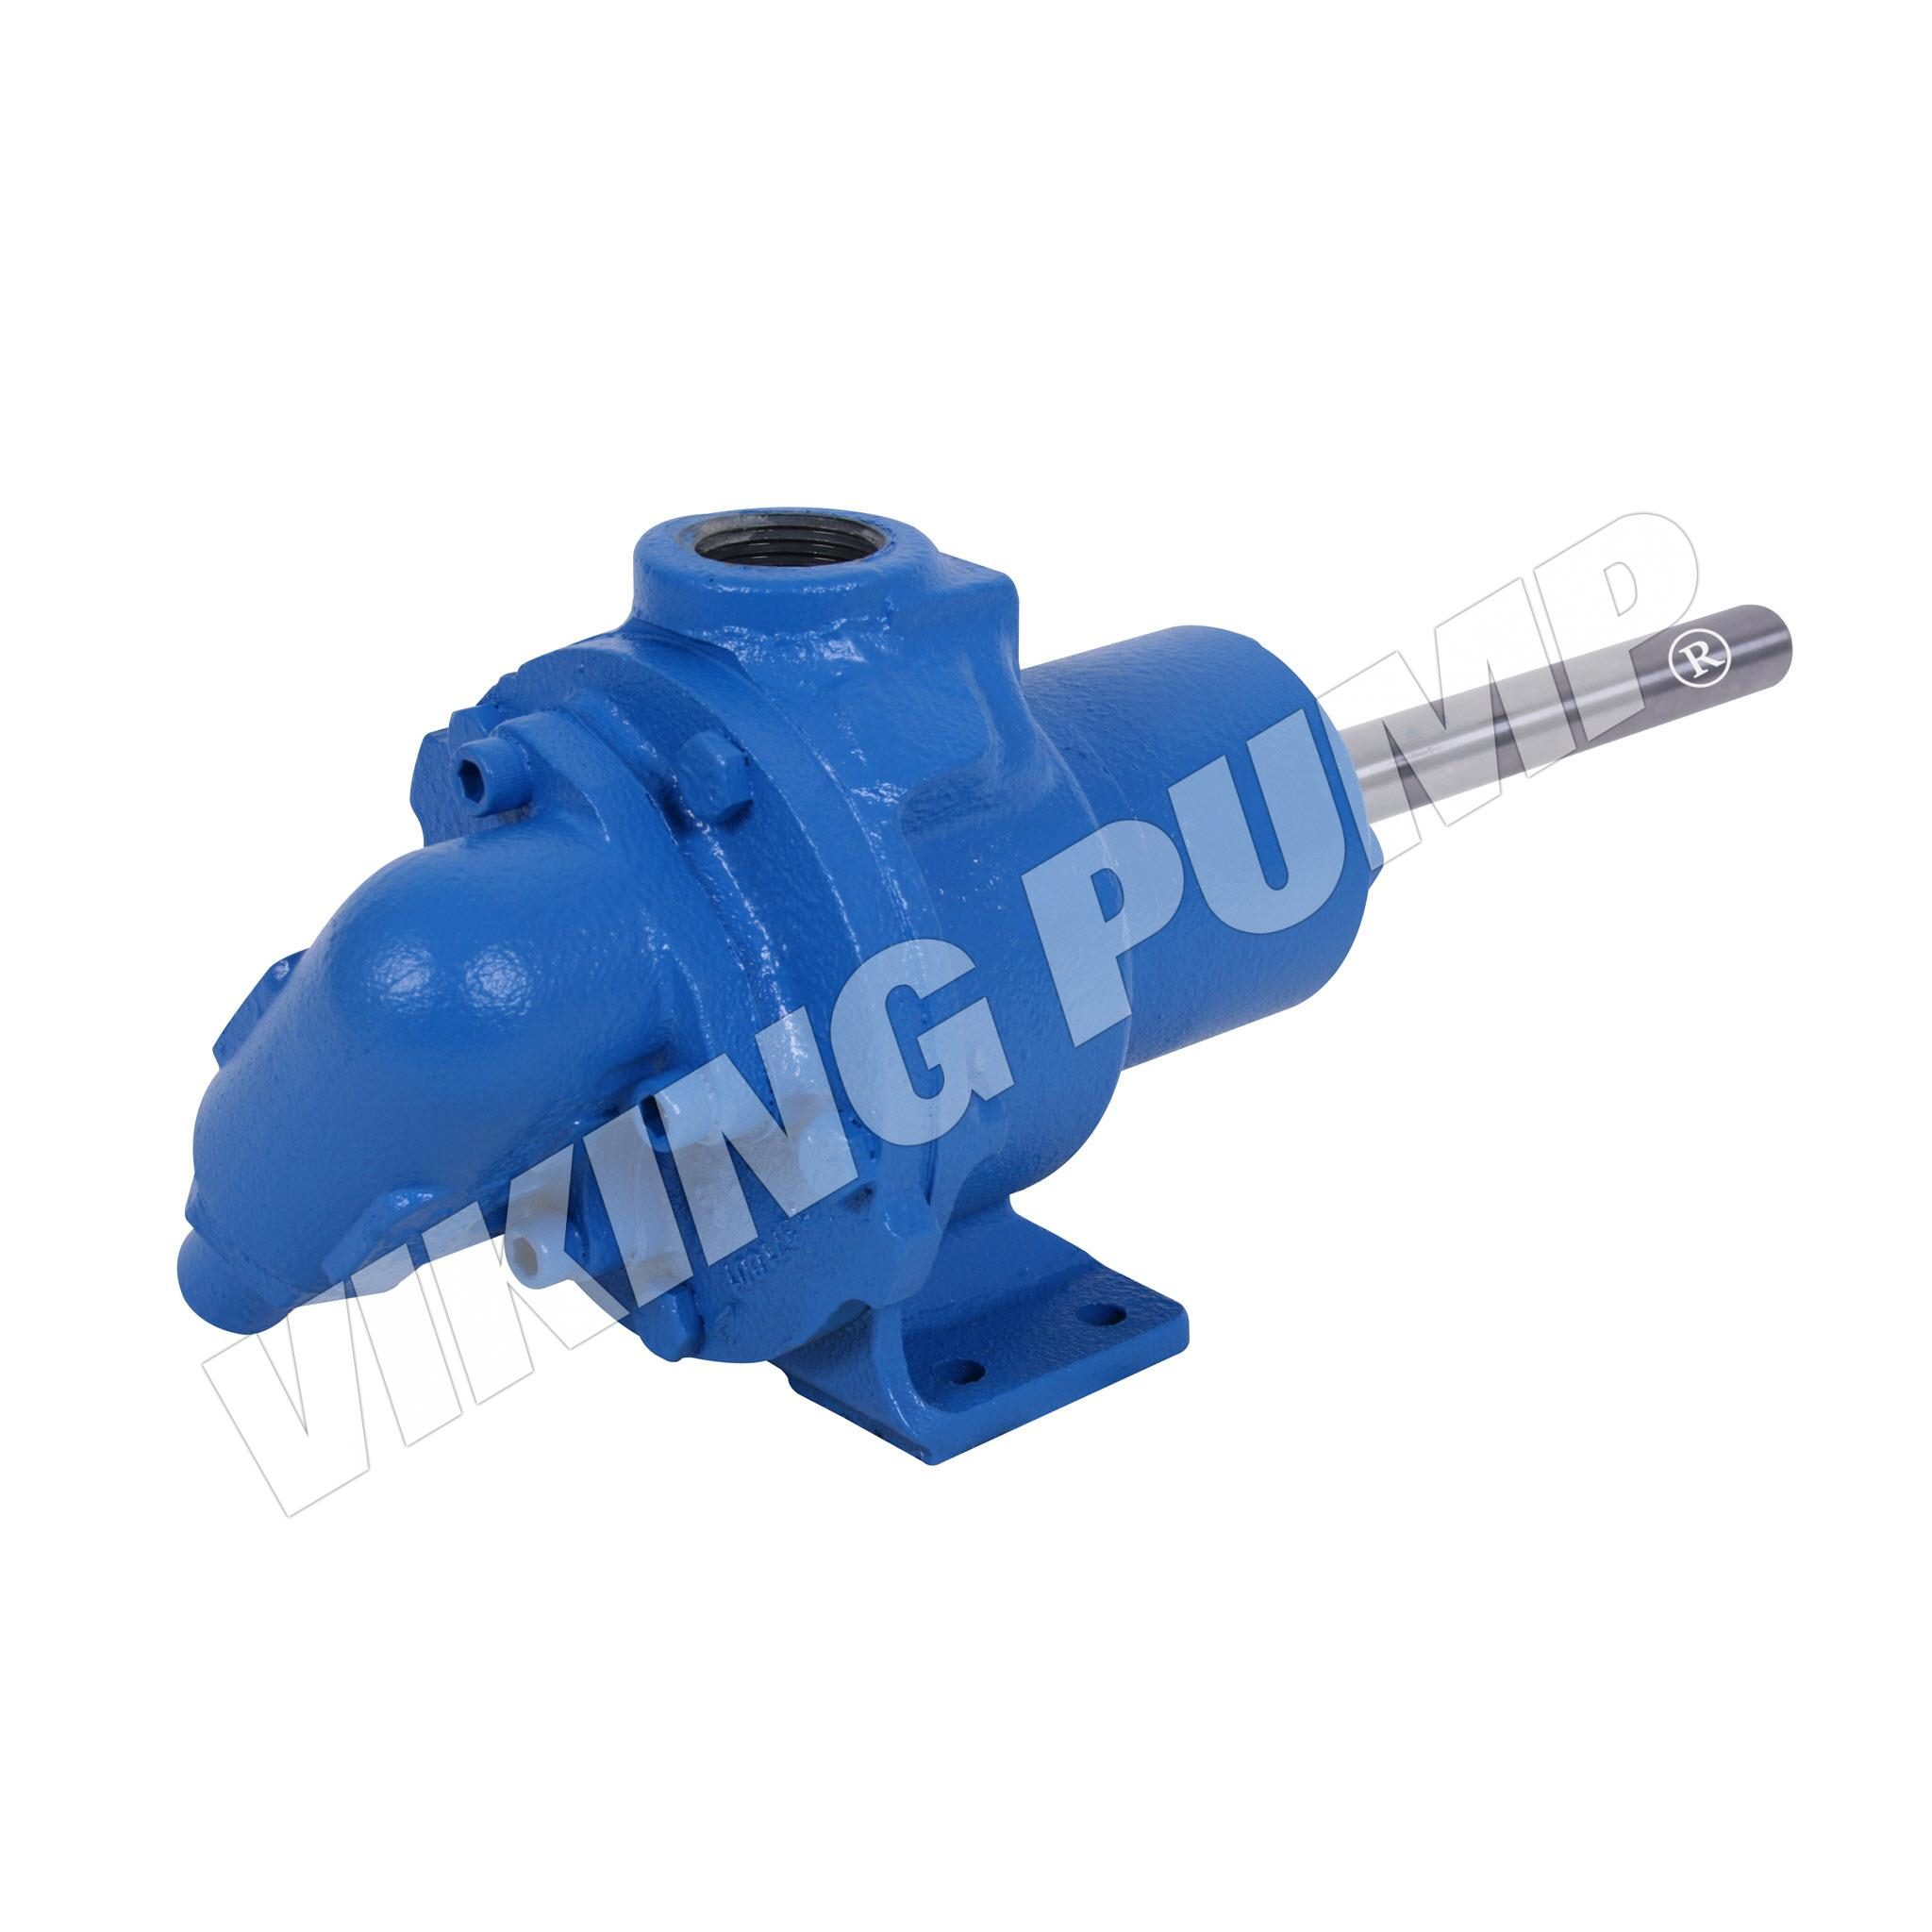 Model H432, Foot Mounted, Mechanical Seal, Relief Valve Pump